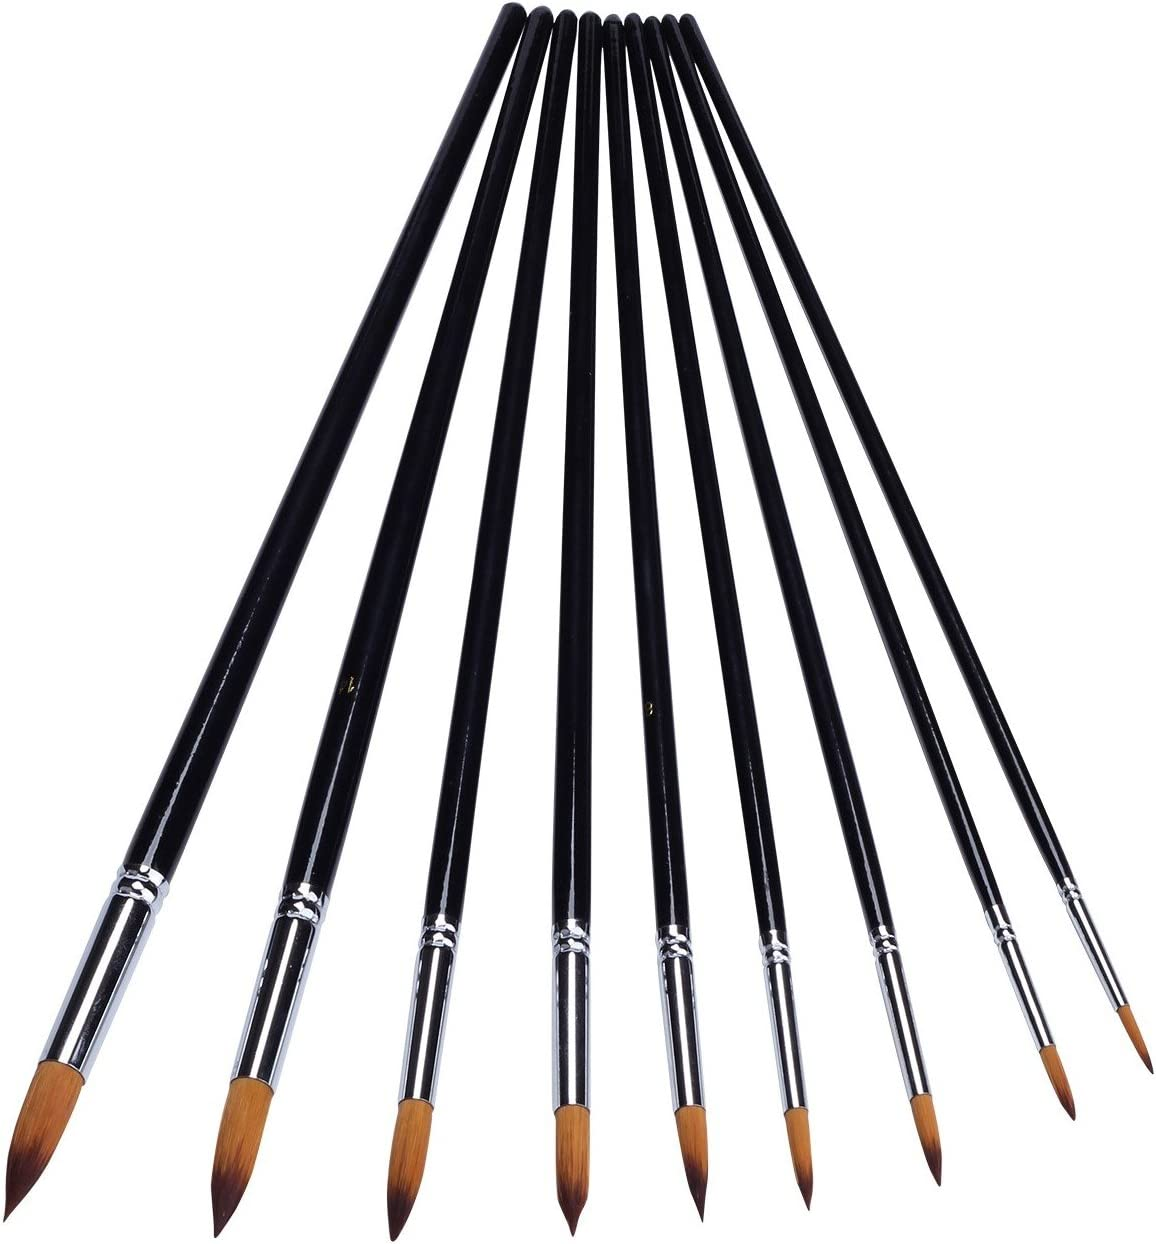 9 pcs Artist Paint Brushes Nylon Filbert Painting Set For Acrylic Watercolor Oil